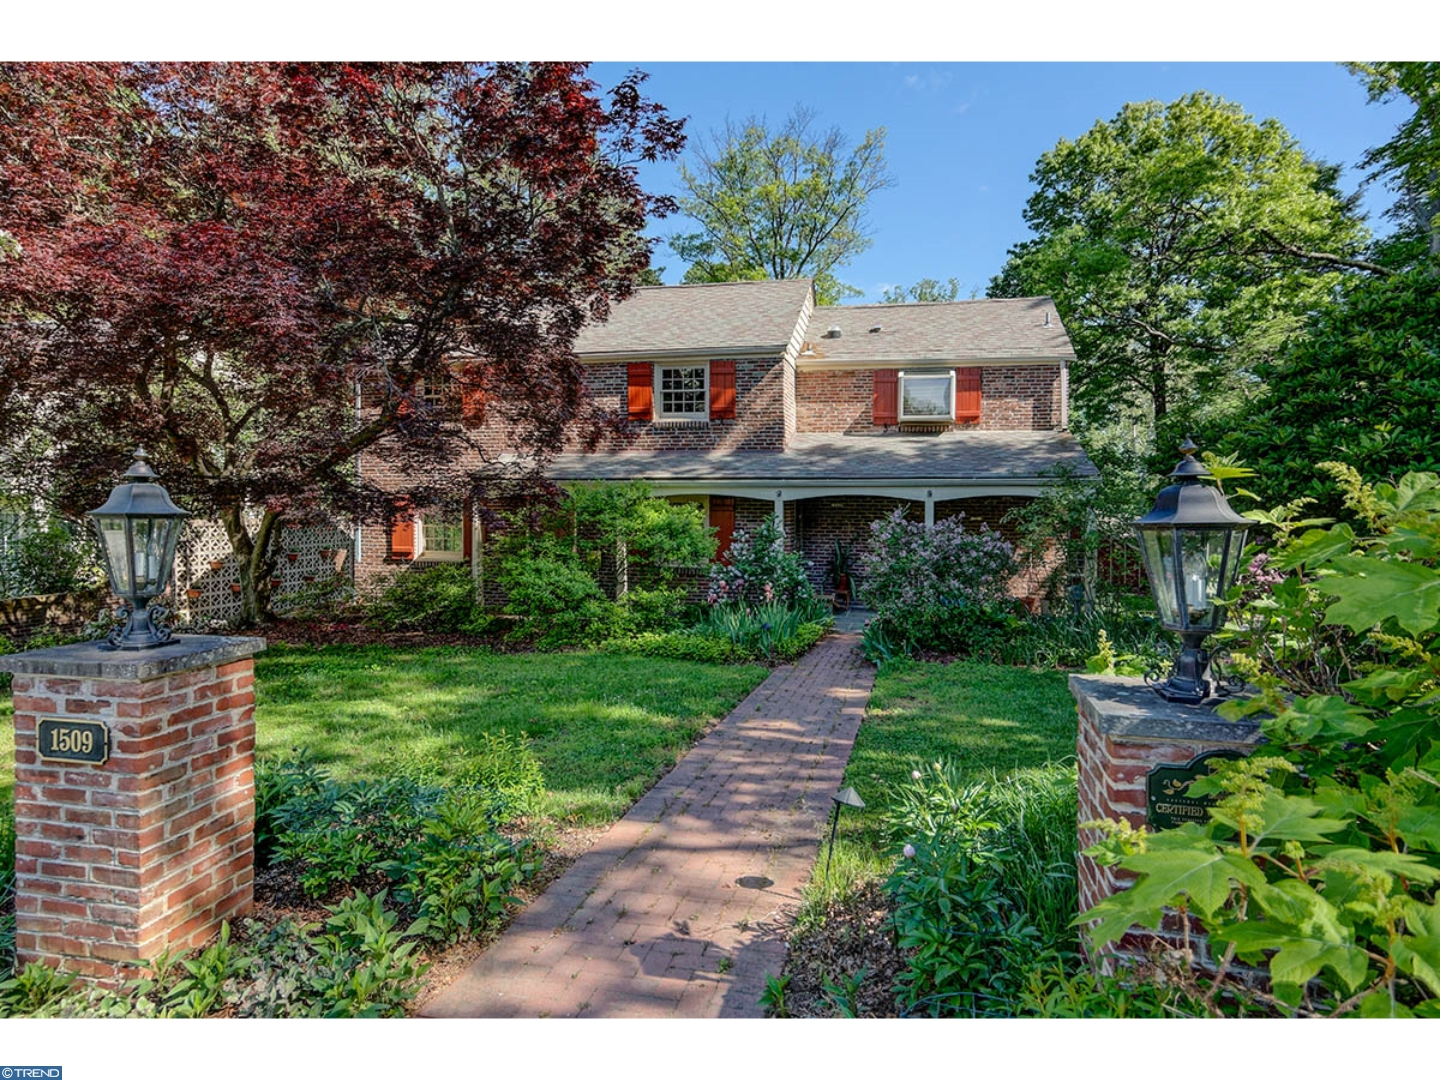 1509 PROSPECT RIDGE BLVD, HADDON HEIGHTS, NJ 08035